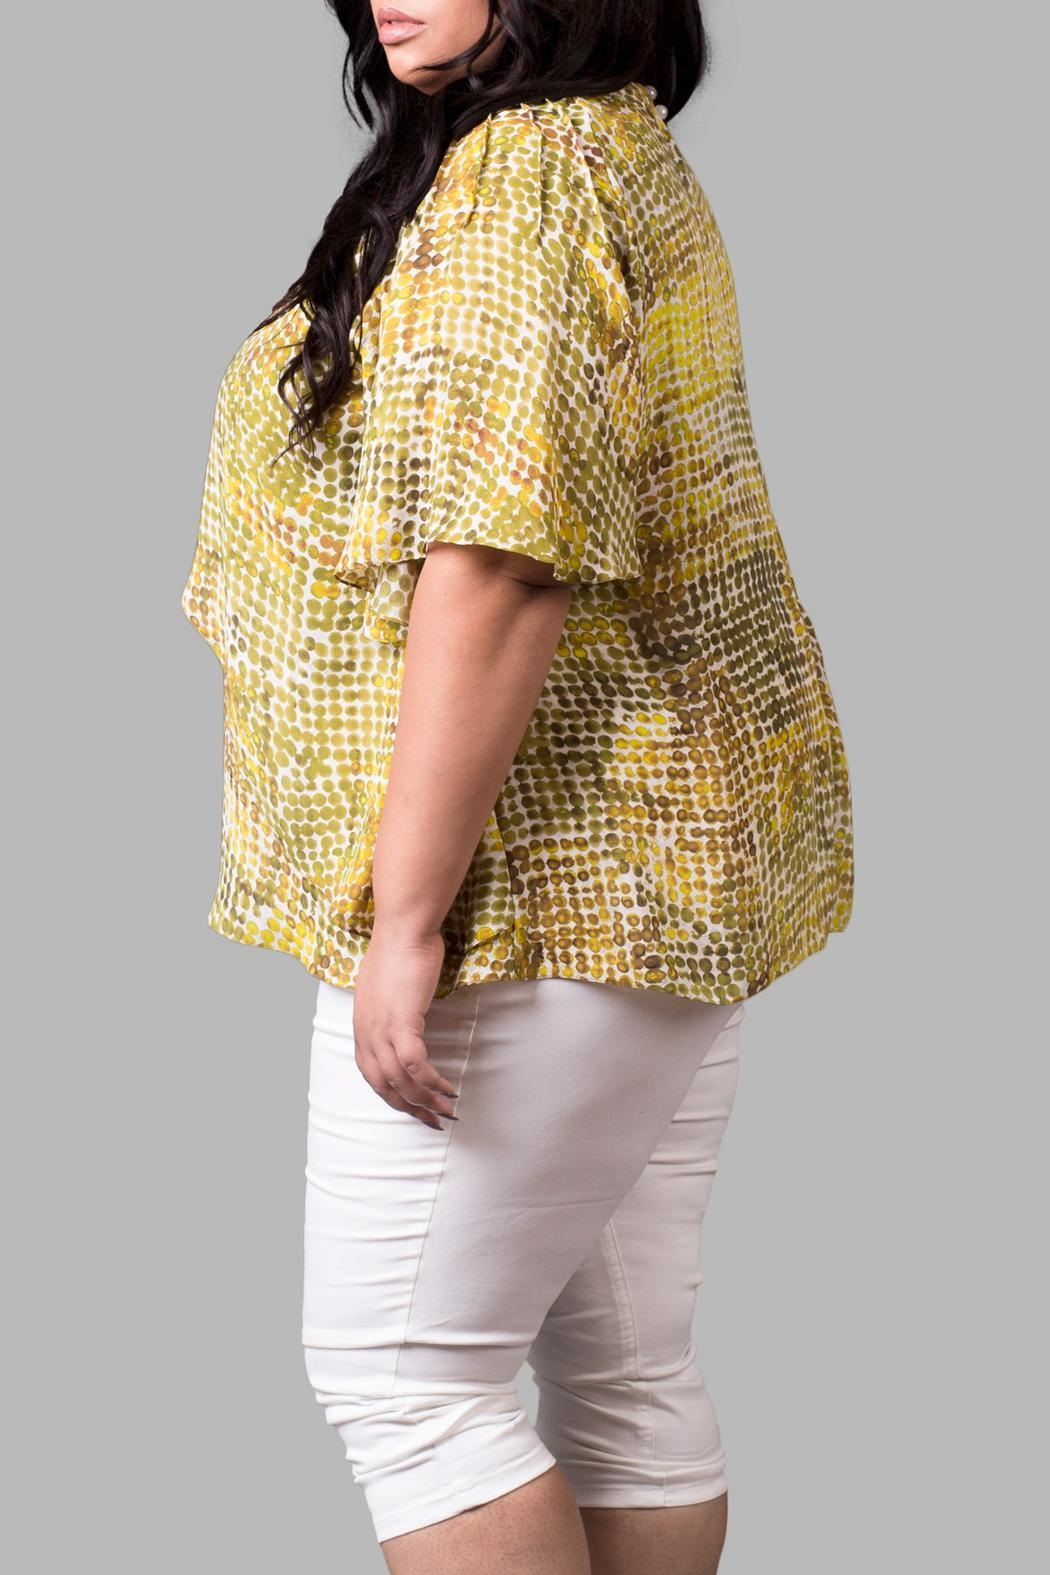 Yona New York Crisscross Yellow Top - Front Full Image